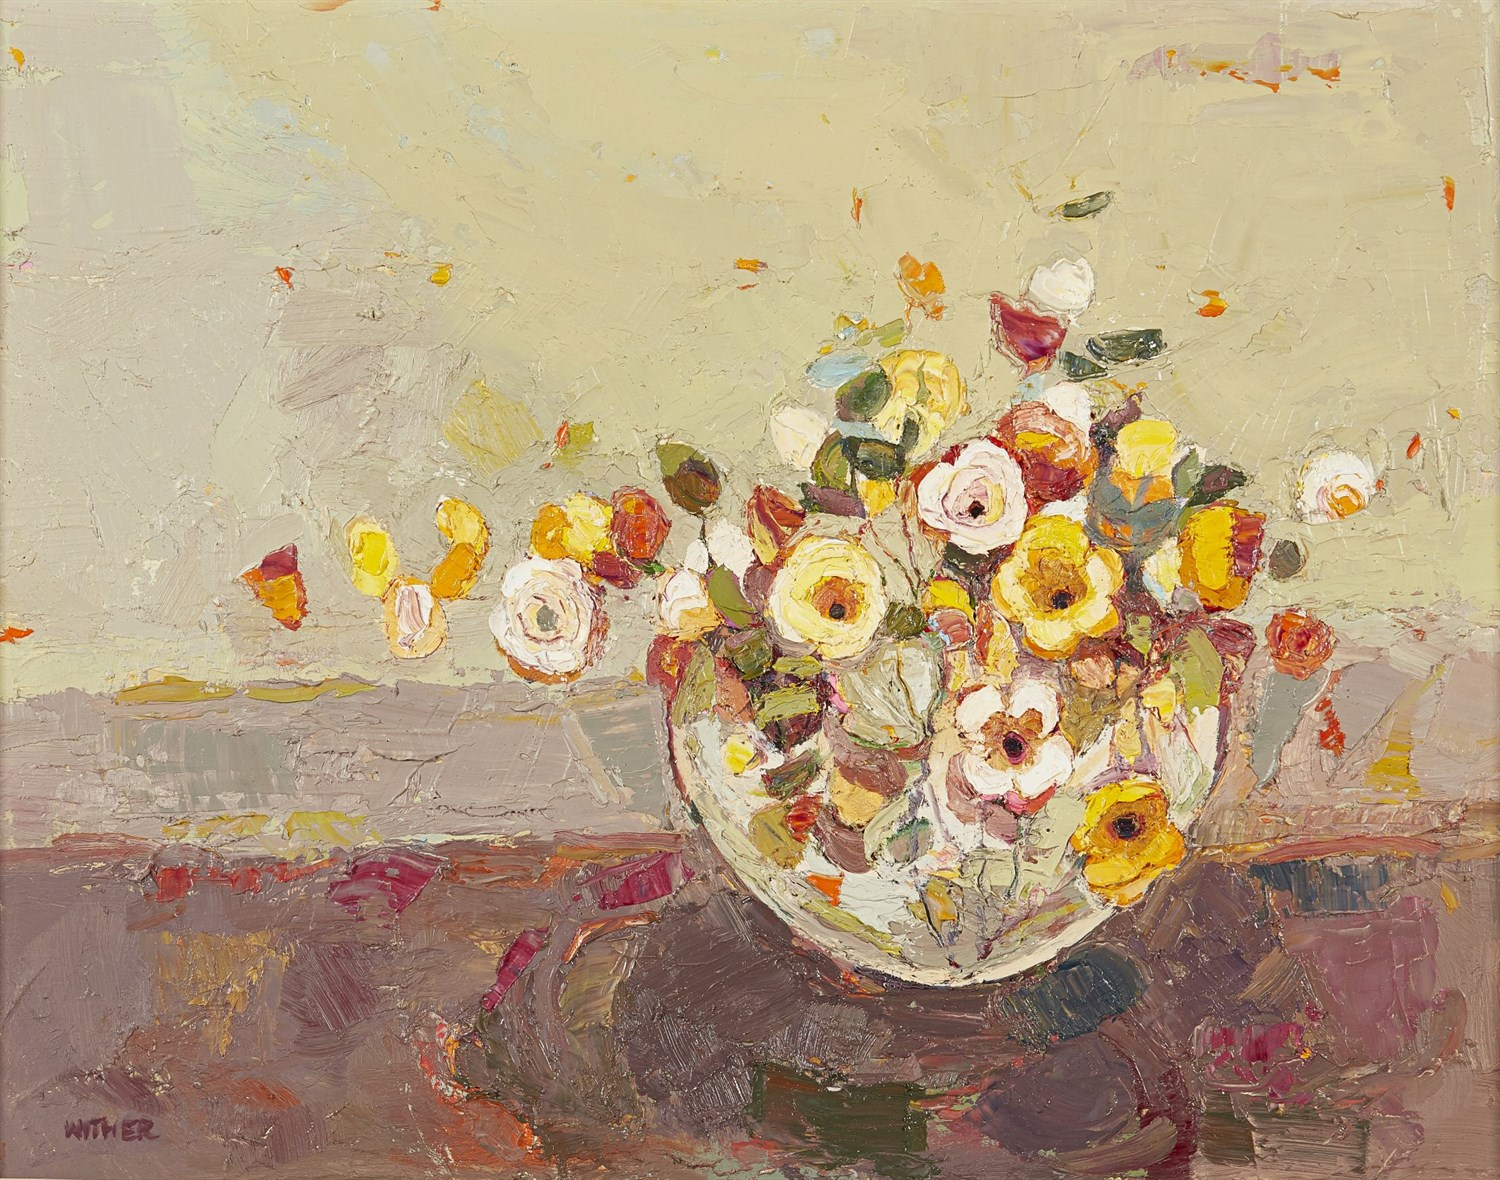 Lot 24-KIRSTY WITHER (SCOTTISH B.1968)